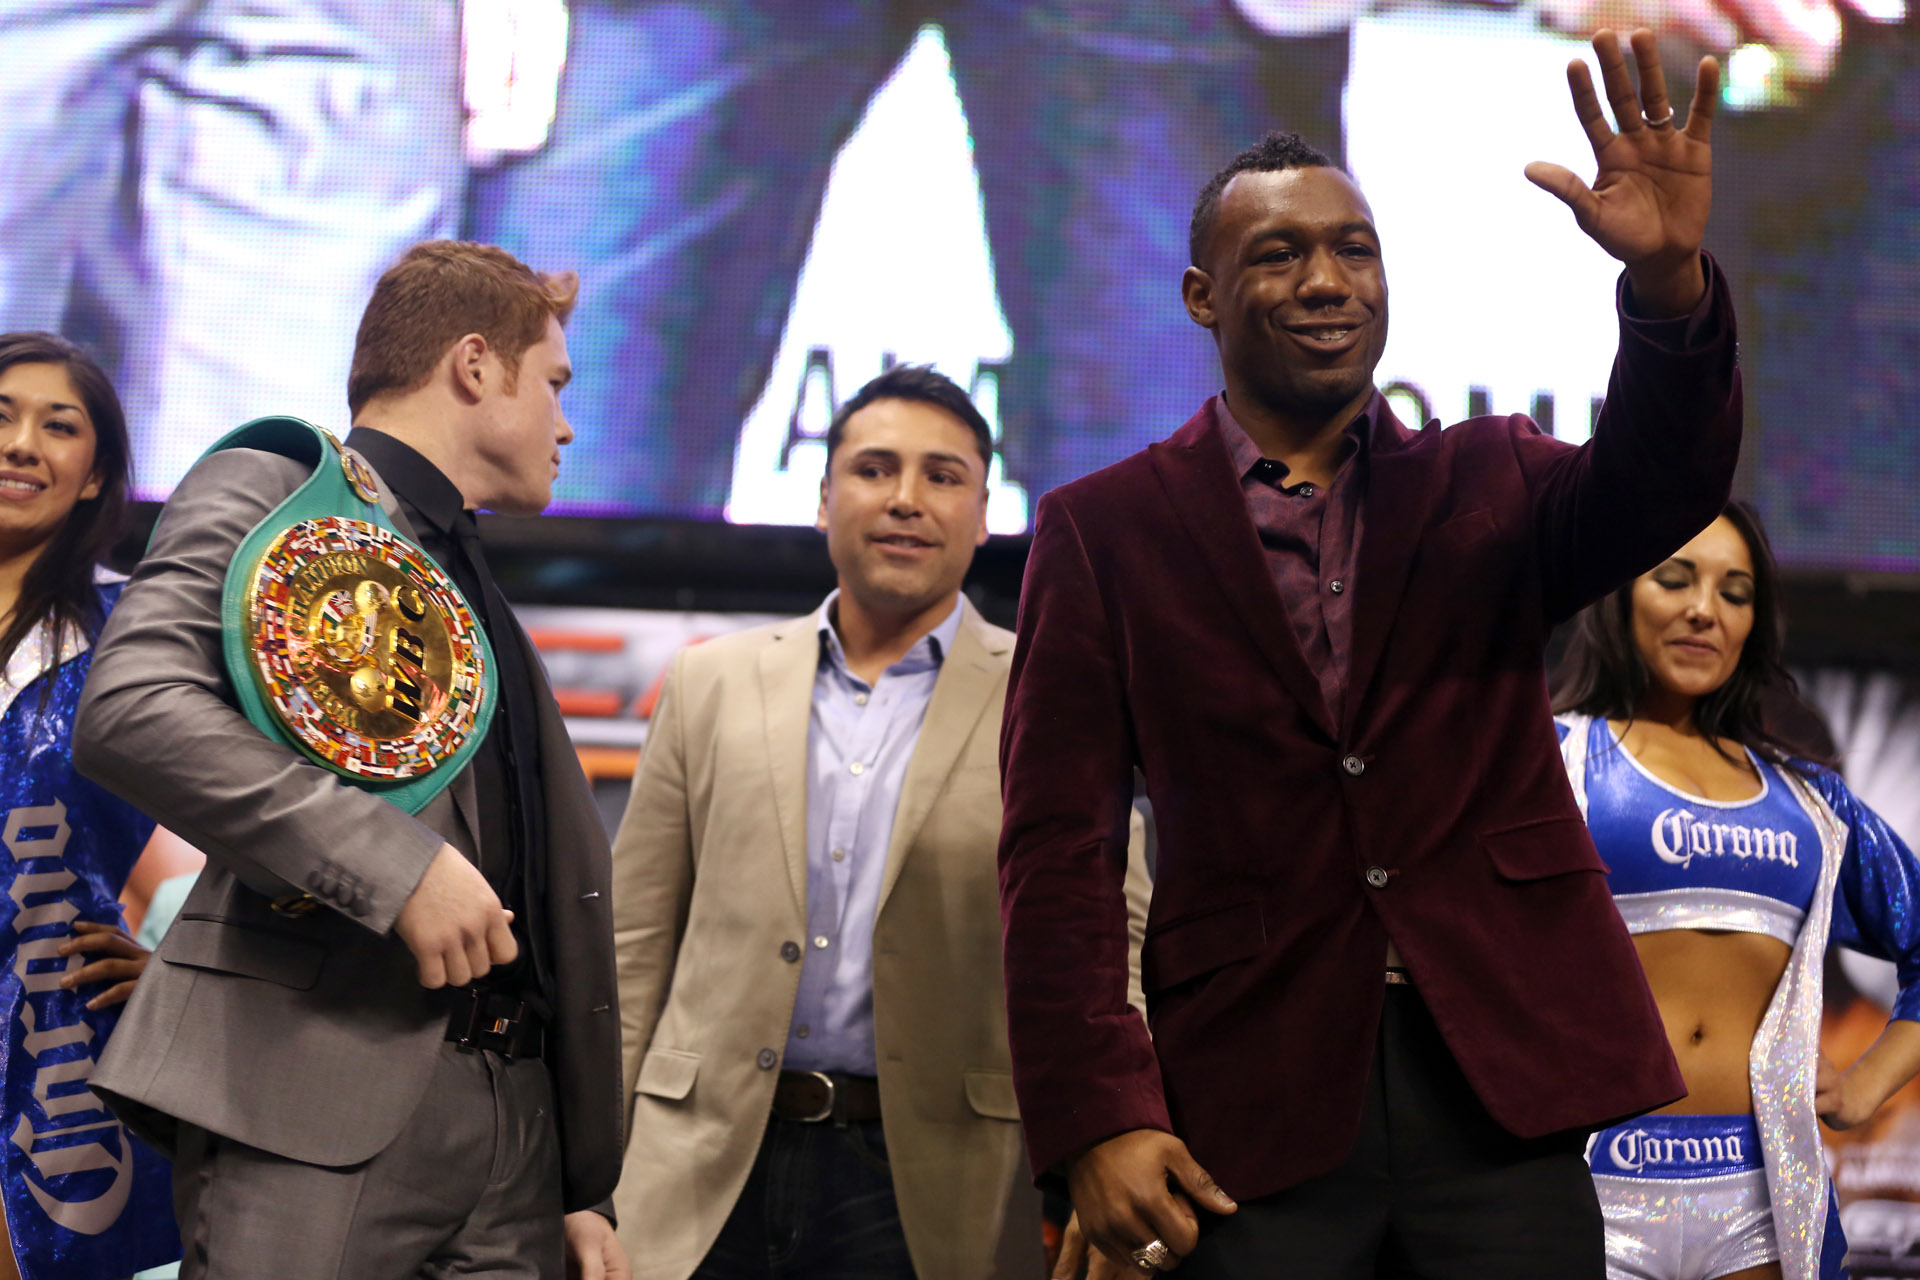 Alvarez vs trout betting odds betting odds presidential nominations